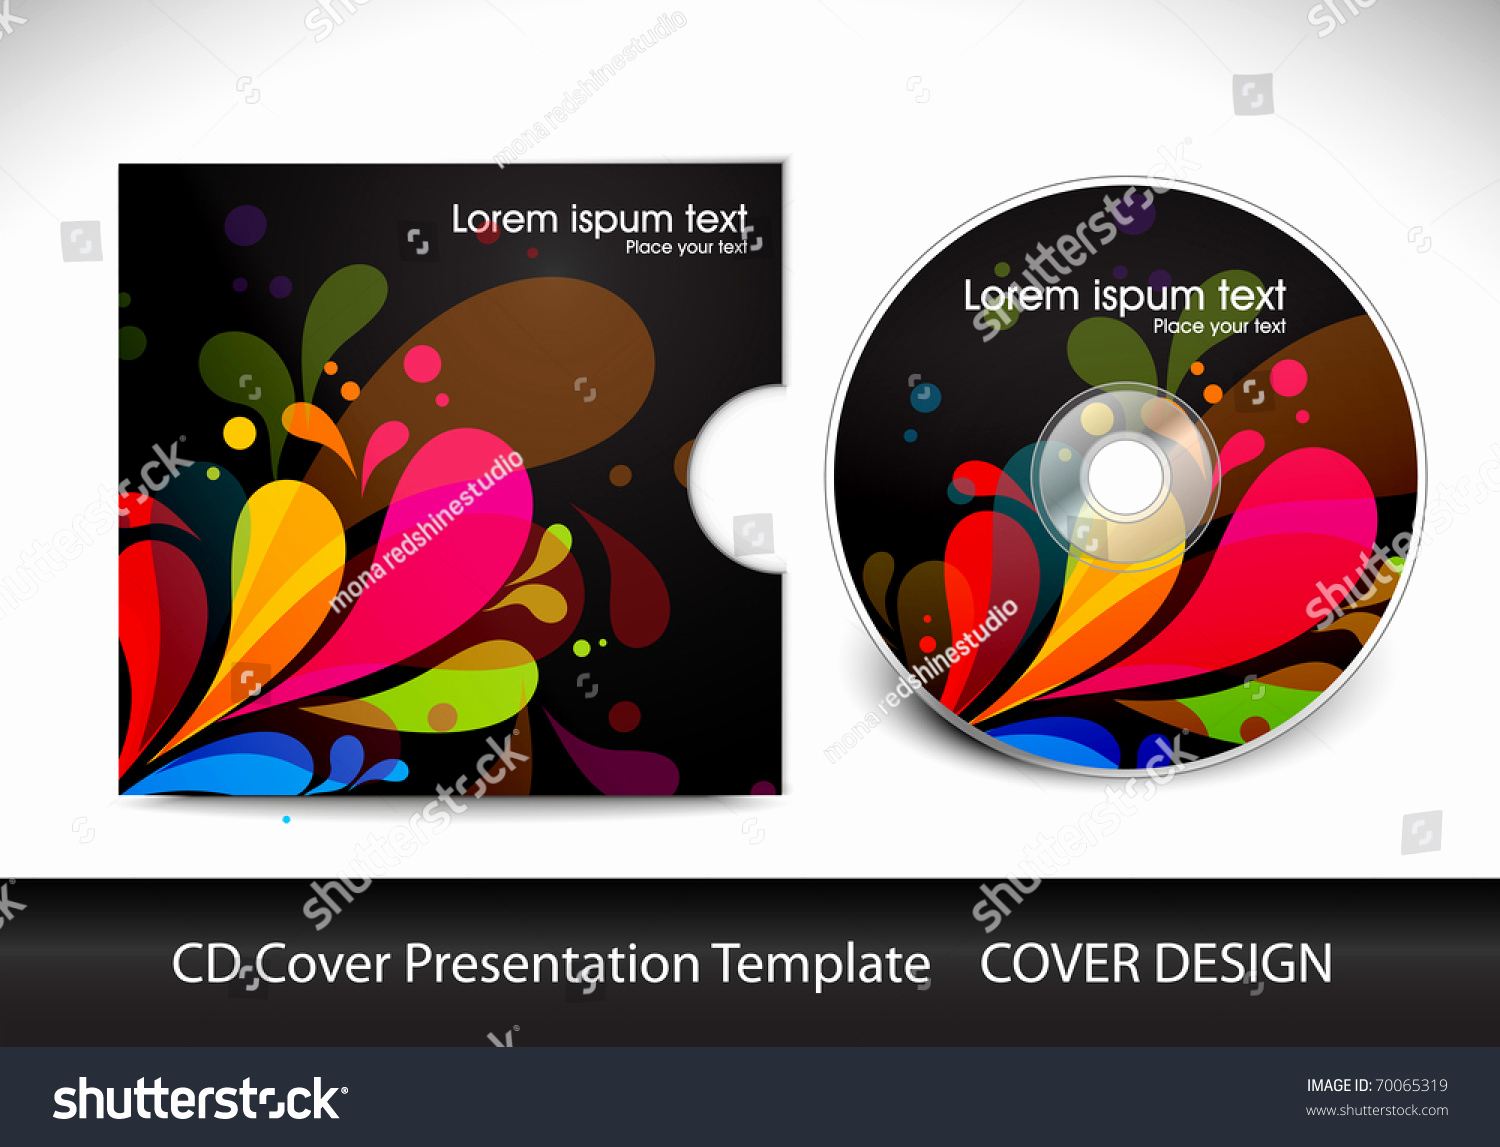 Cd Cover Design Template Inspirational Cd Cover Presentation Design Template Editable Stock